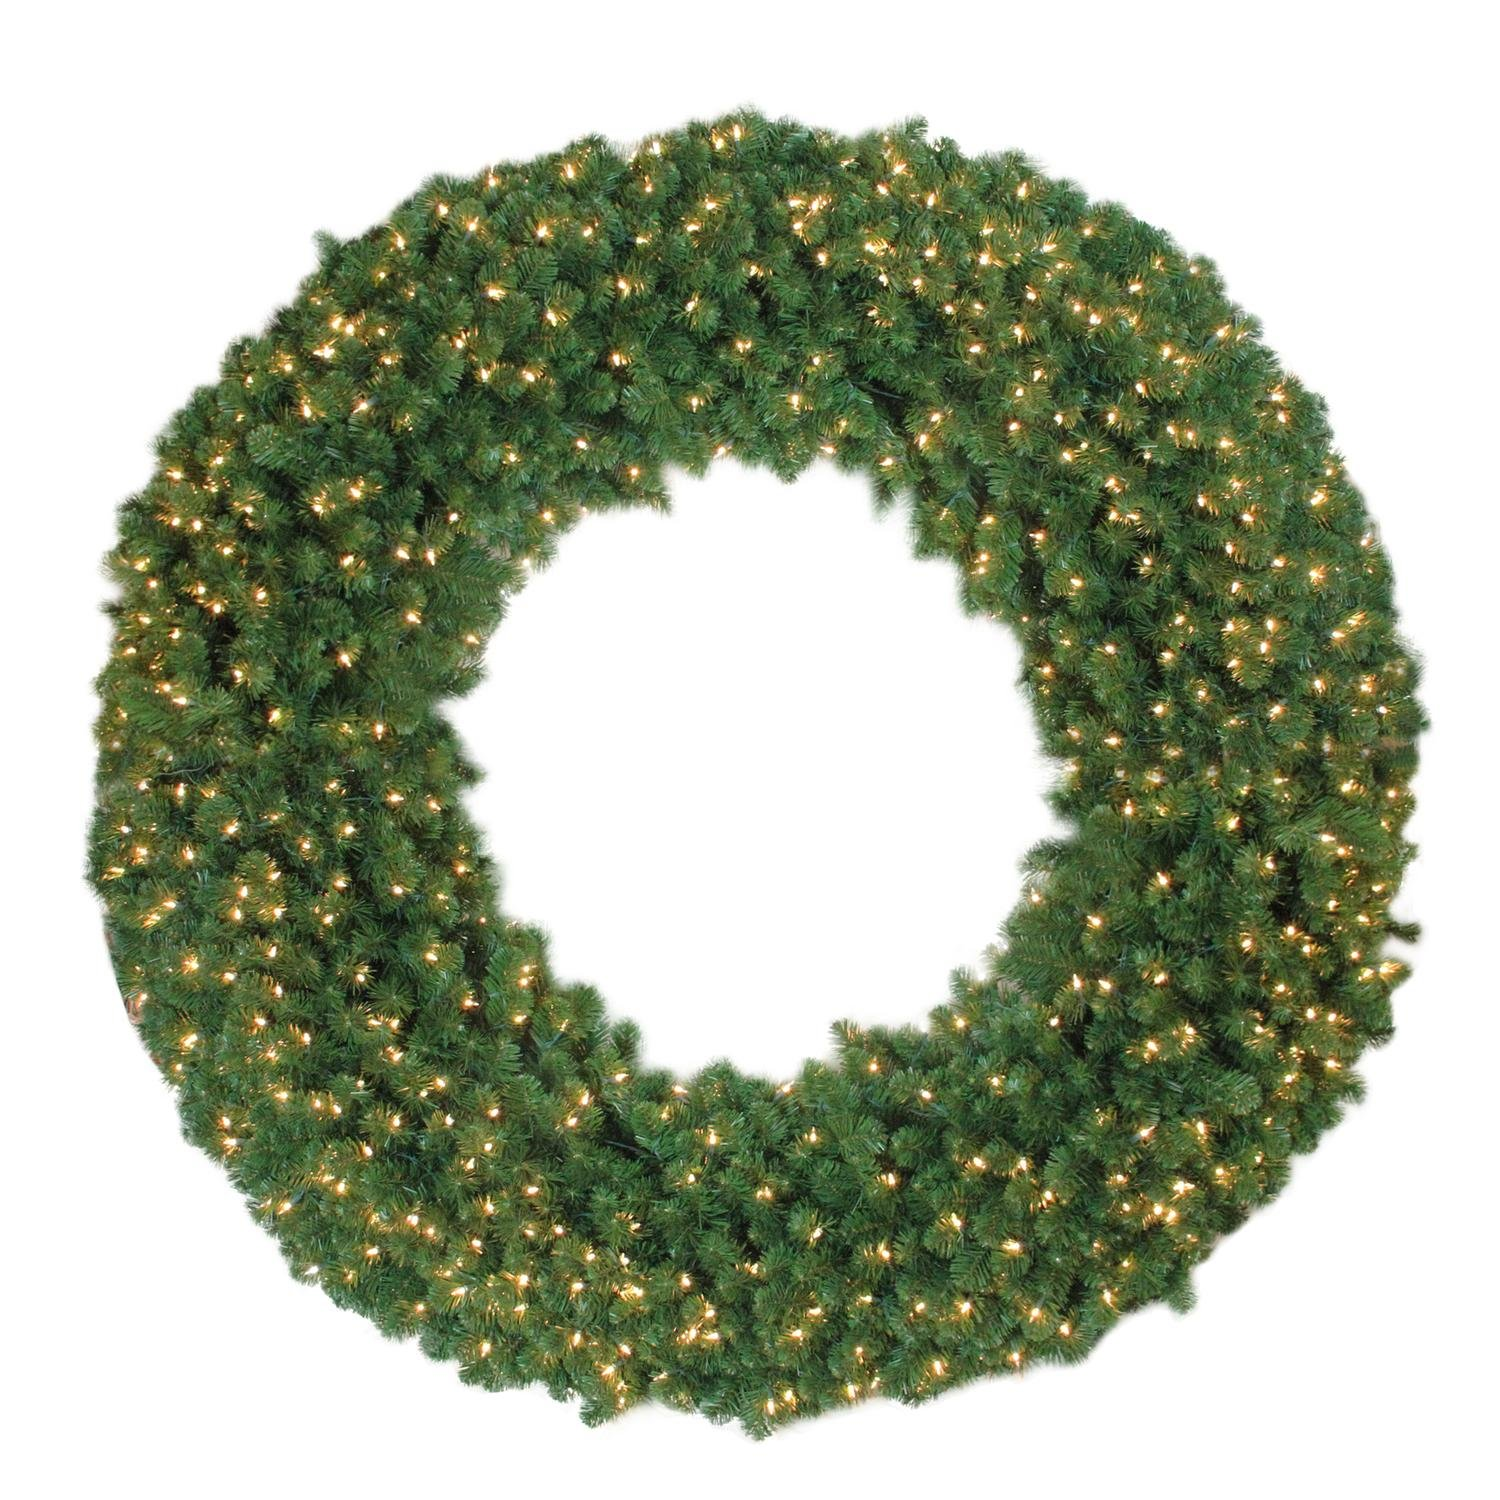 NORTHLIGHT NL03212 Clear Lights Olympia Pine Christmas Wreath, 6'